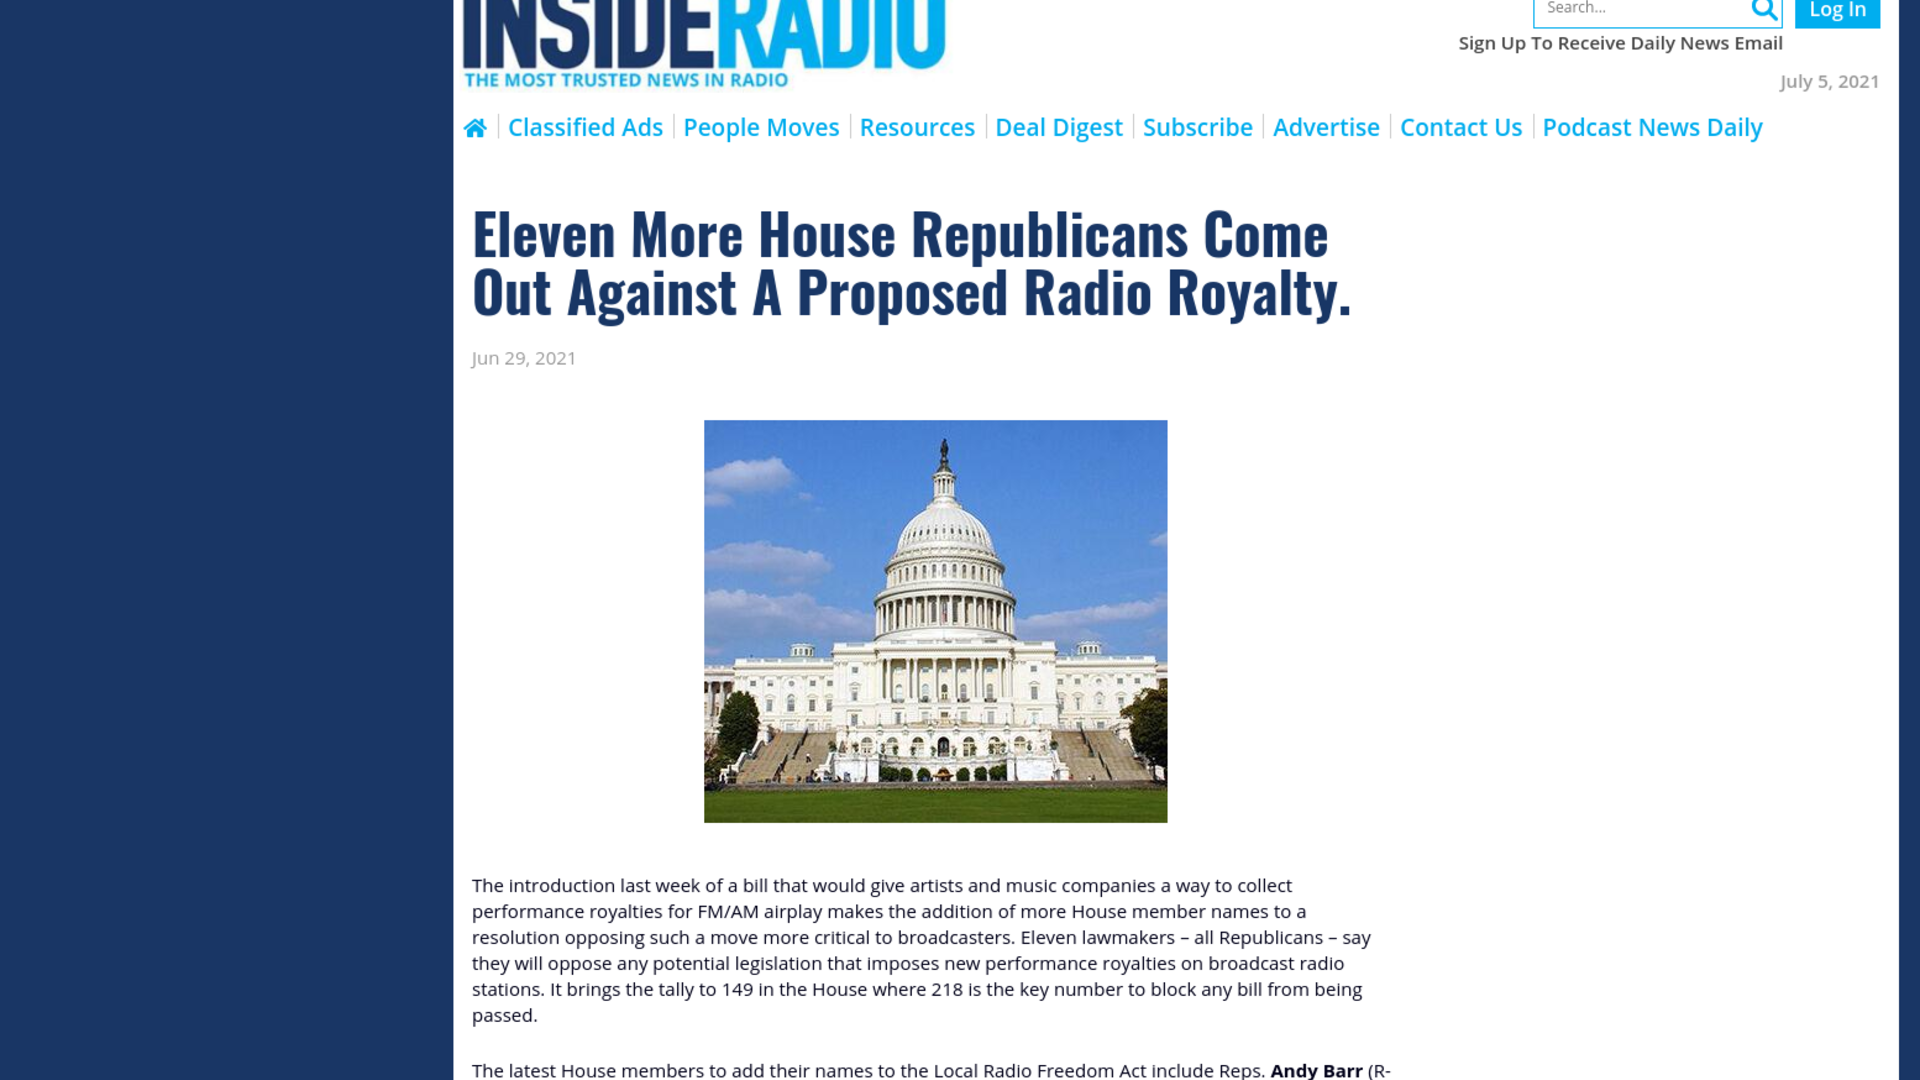 Fairness Rocks News Eleven More House Republicans Come Out Against A Proposed Radio Royalty.